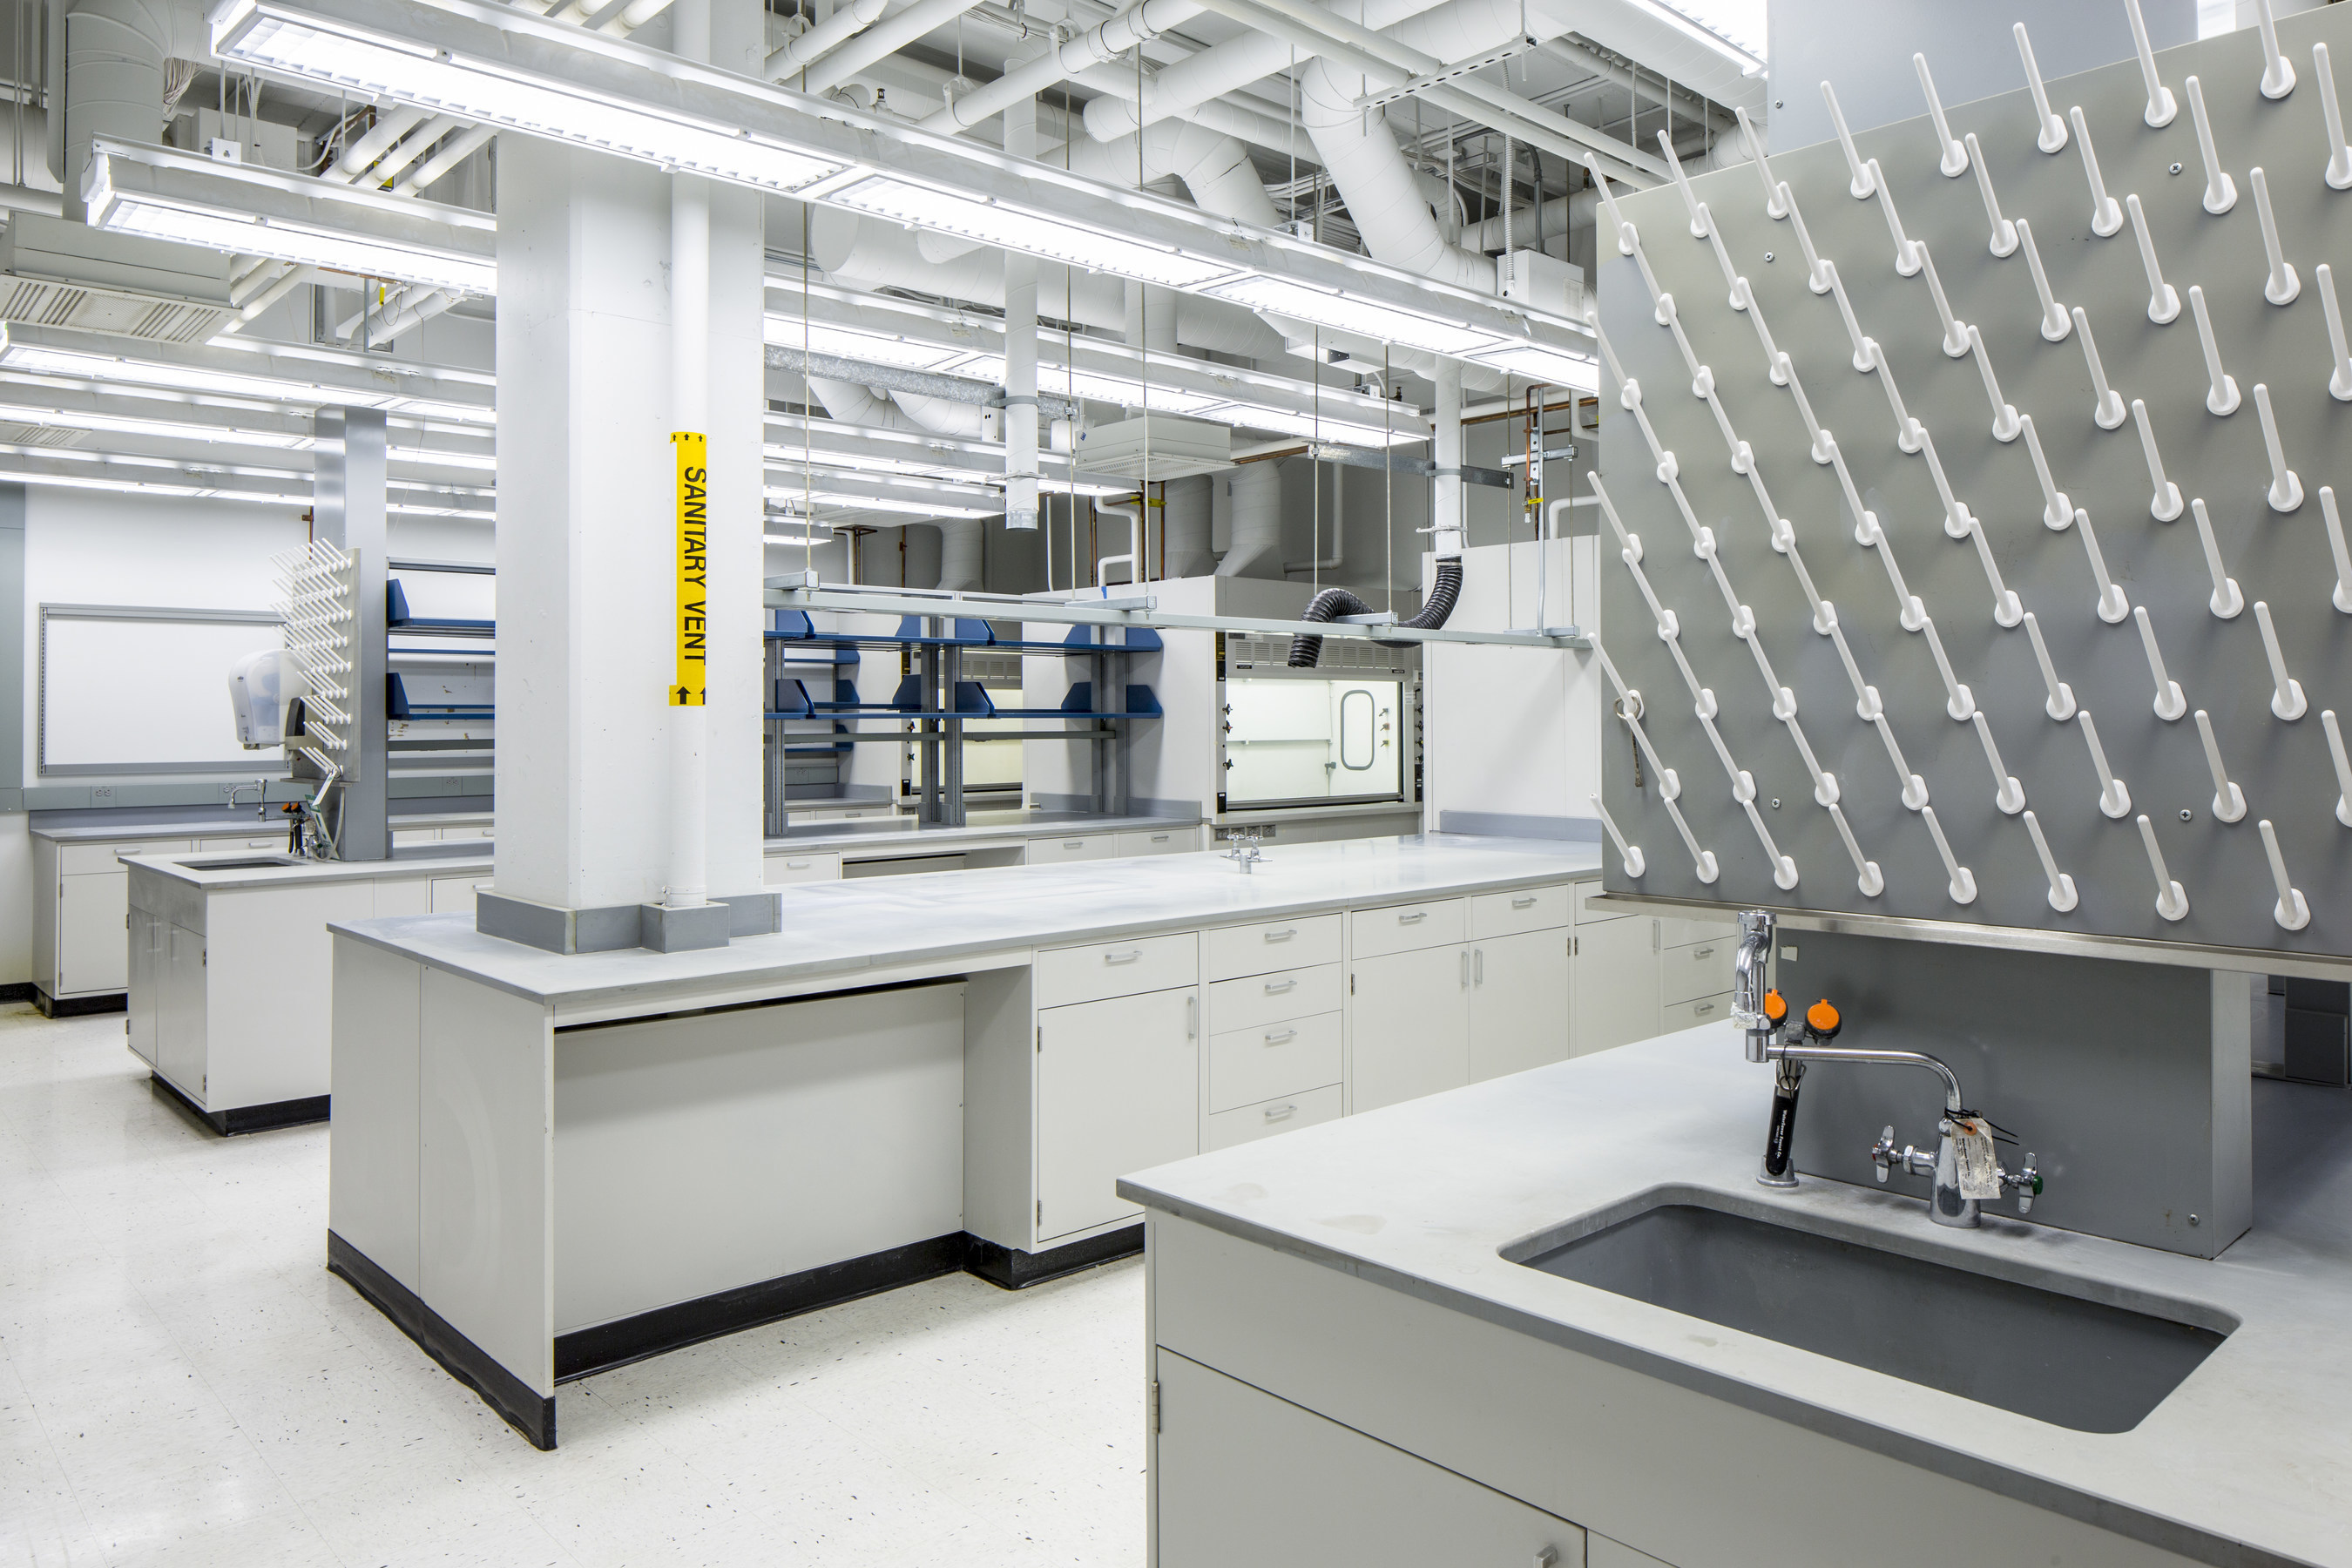 Slumberland partners with Blossom Medical, LLC, to develop a world-class high tech incubator with state-of-the-art wet and dry labs.